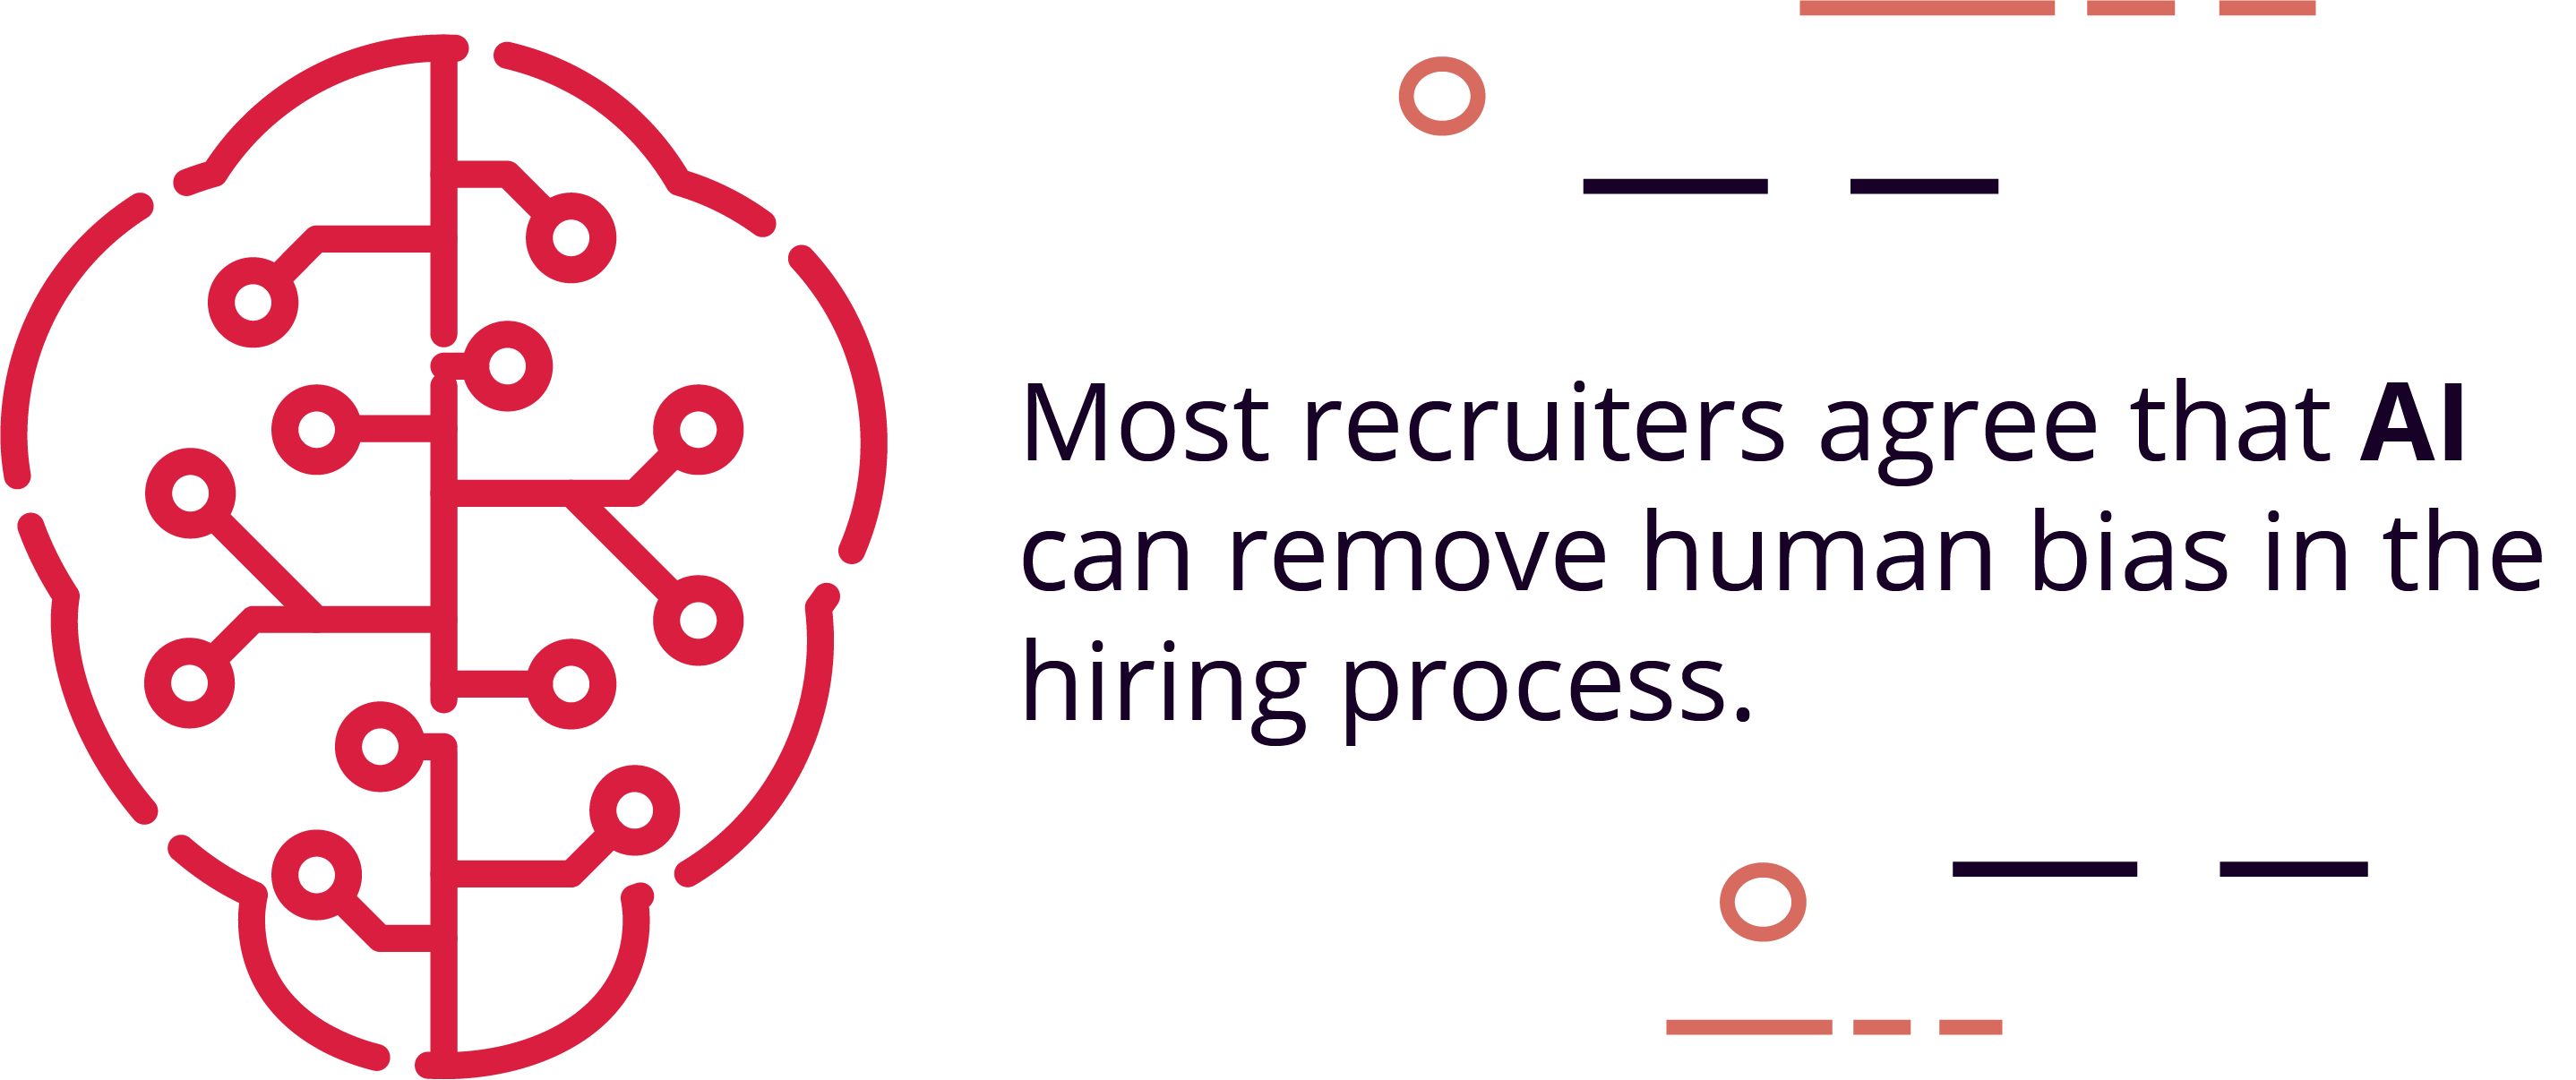 Most recruiters agree that AI can remove human bias in the hiring process